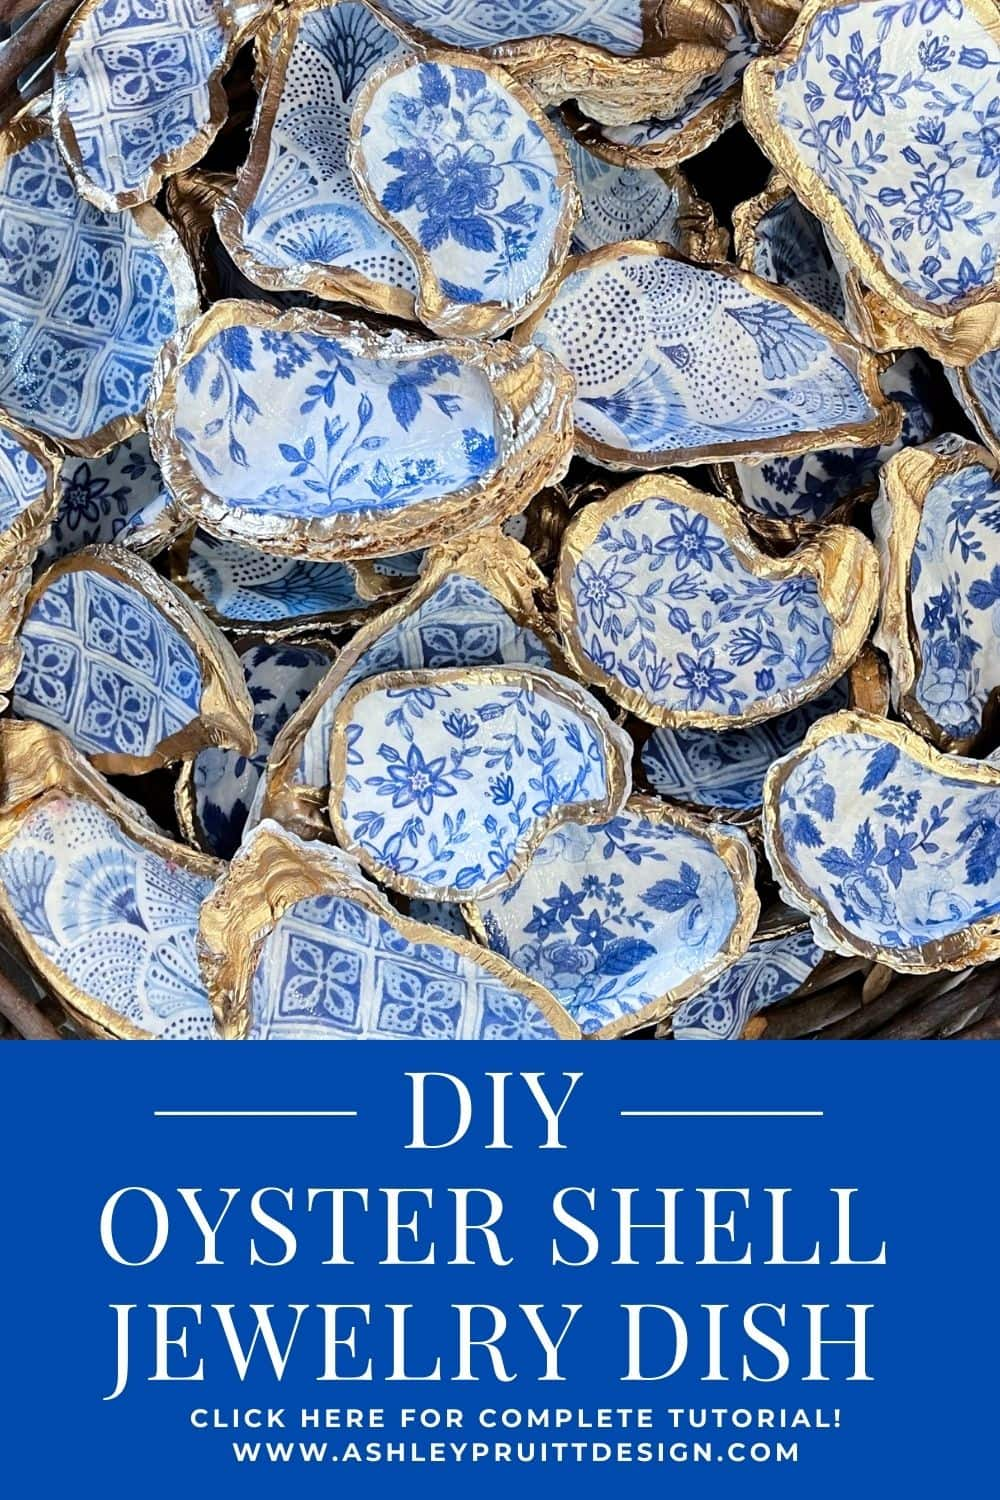 How To Make An Oyster Shell Jewelry Dish